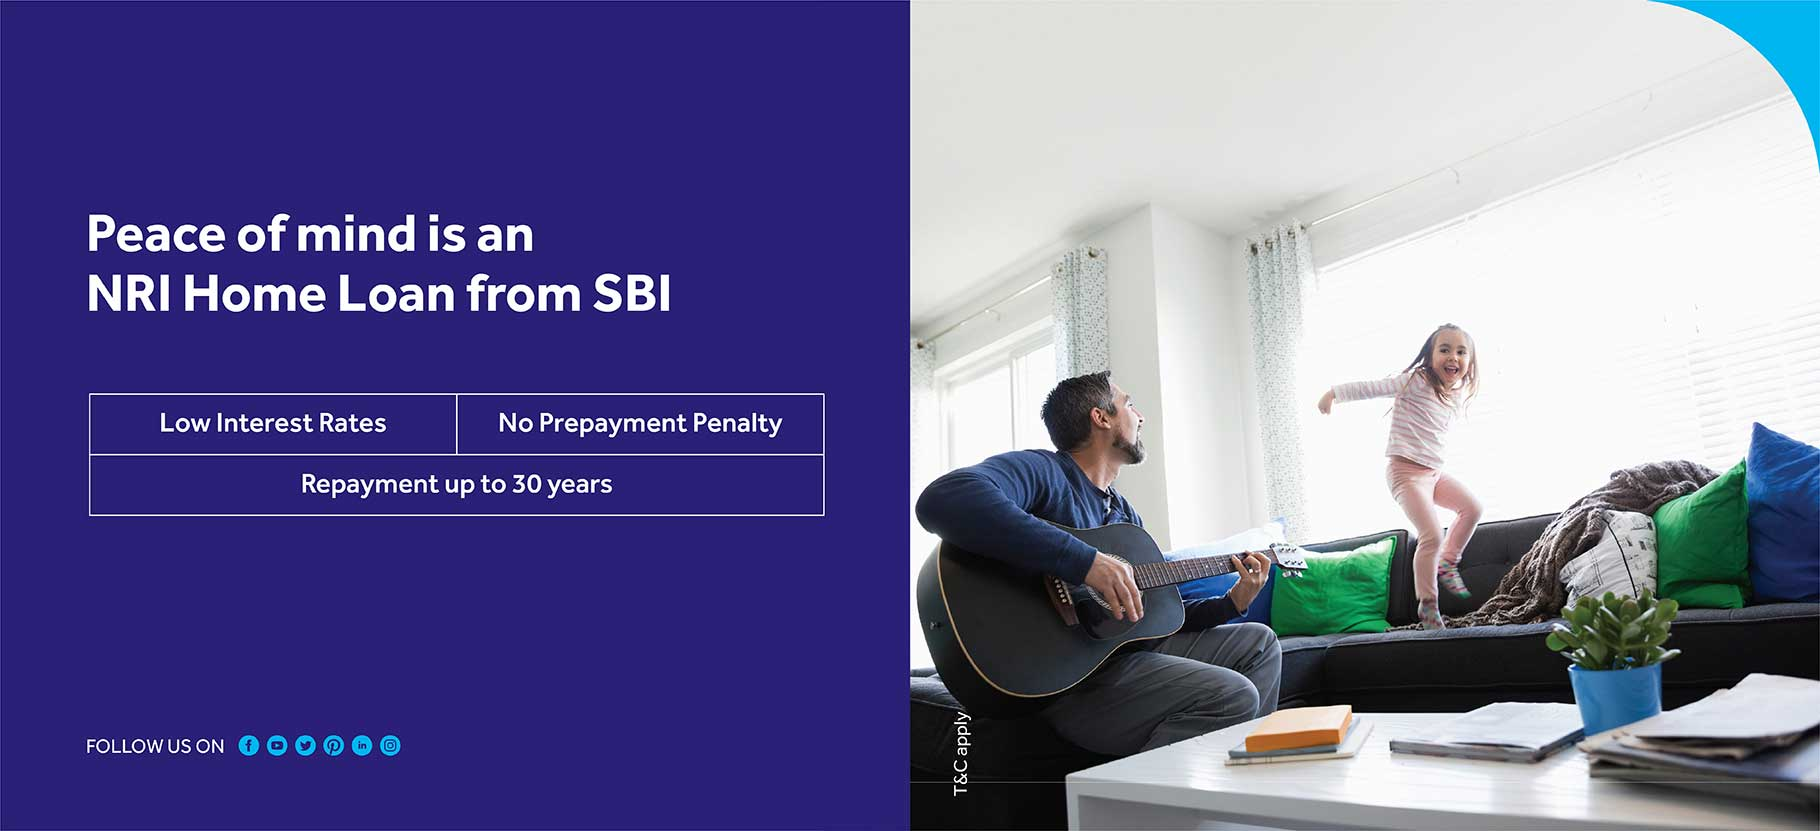 Peace of mind is an Nri home loan from sbi